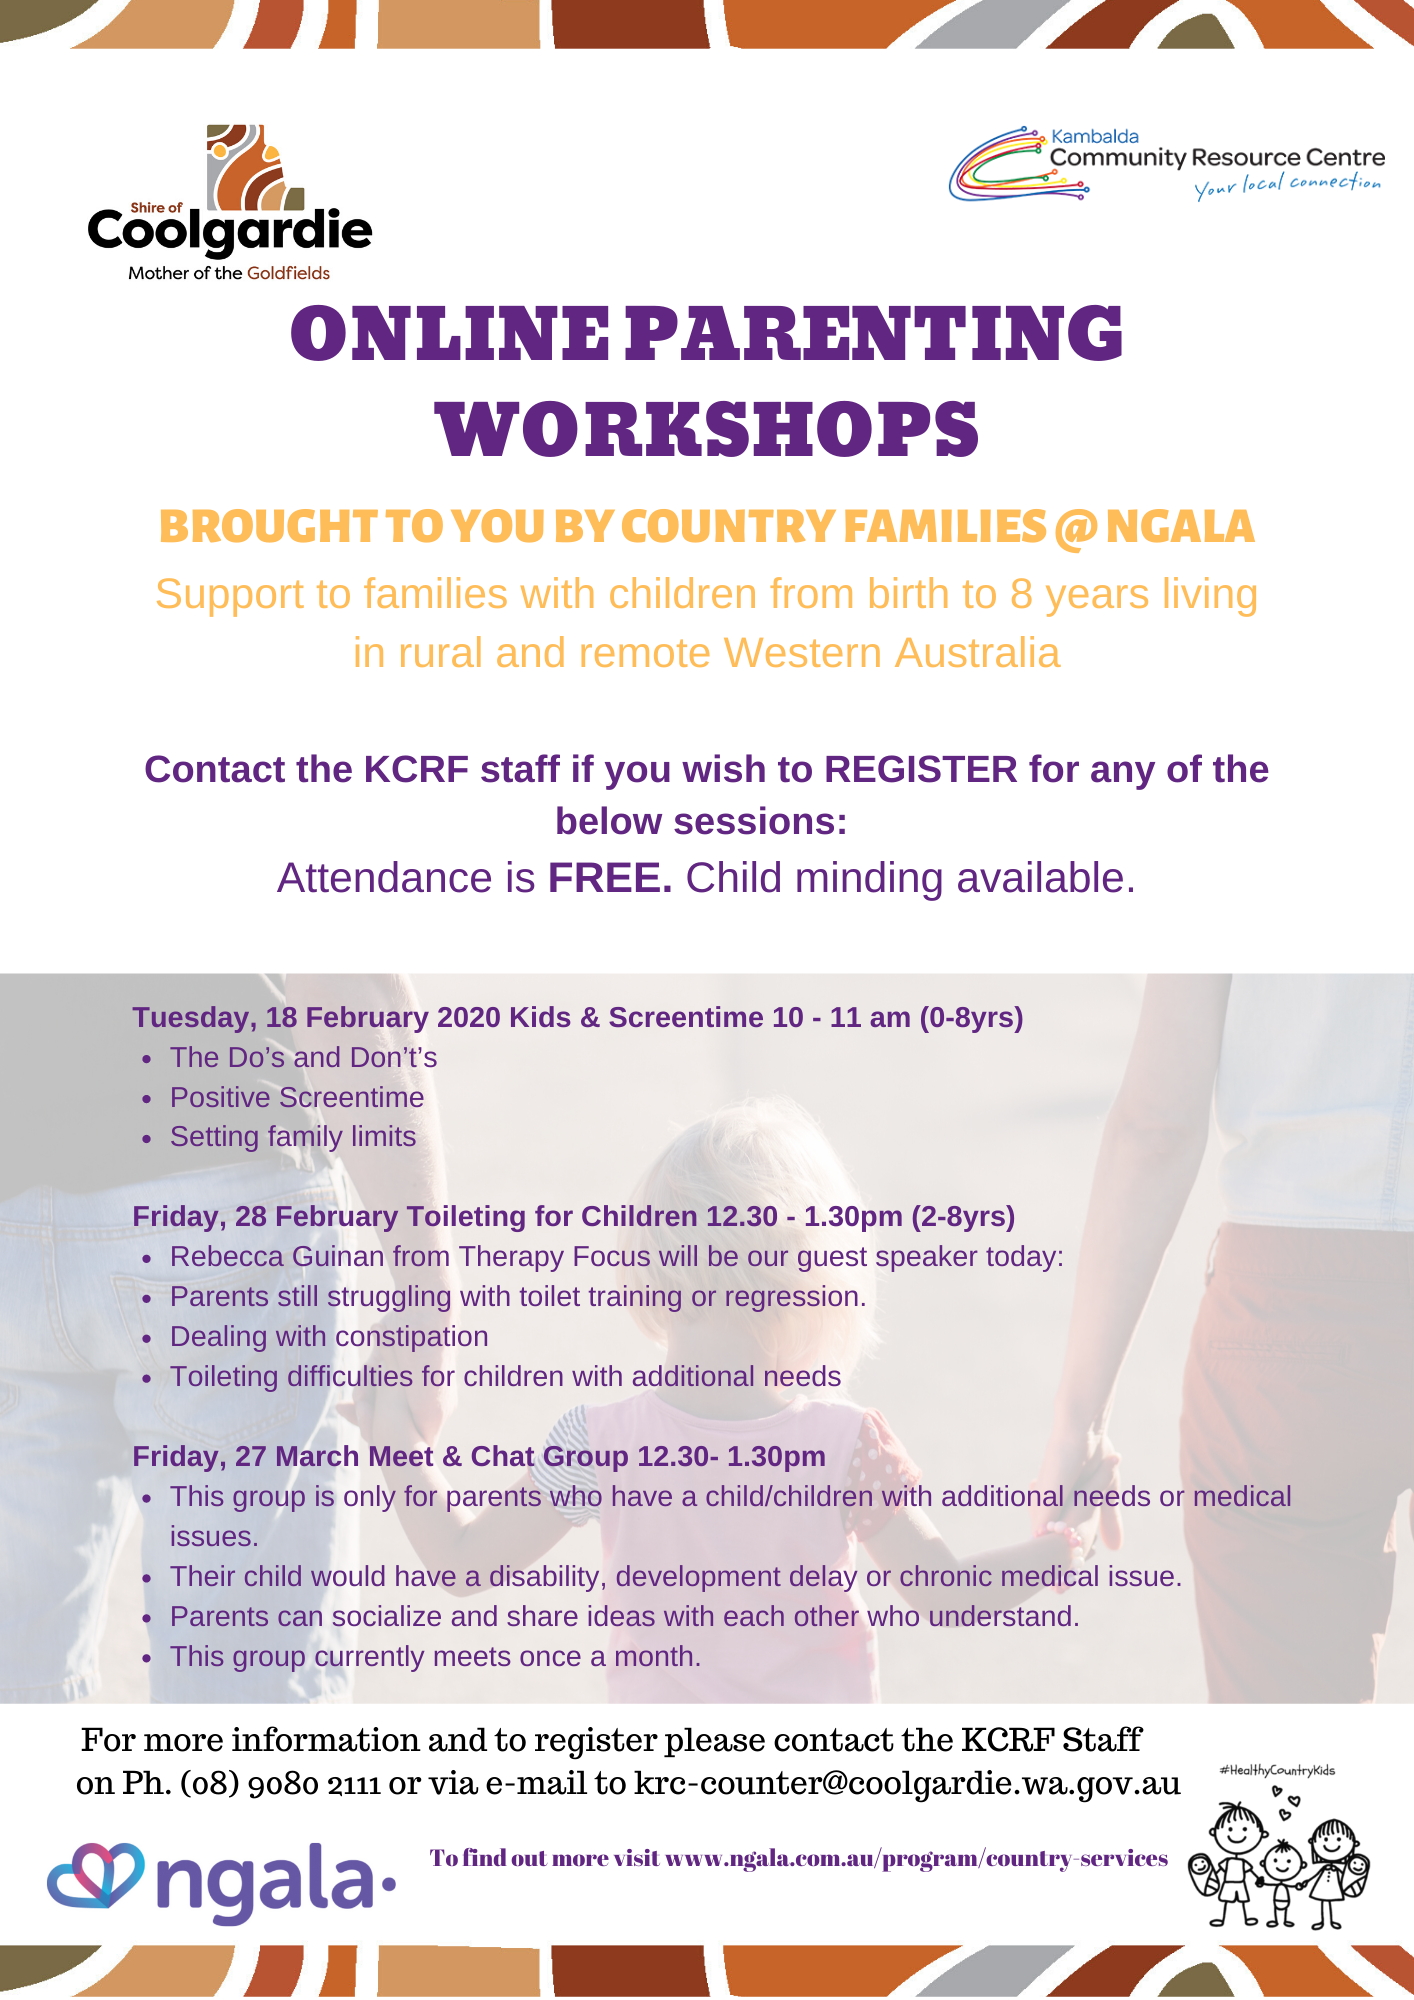 Online Parenting Workshops by Country Families@NGALA